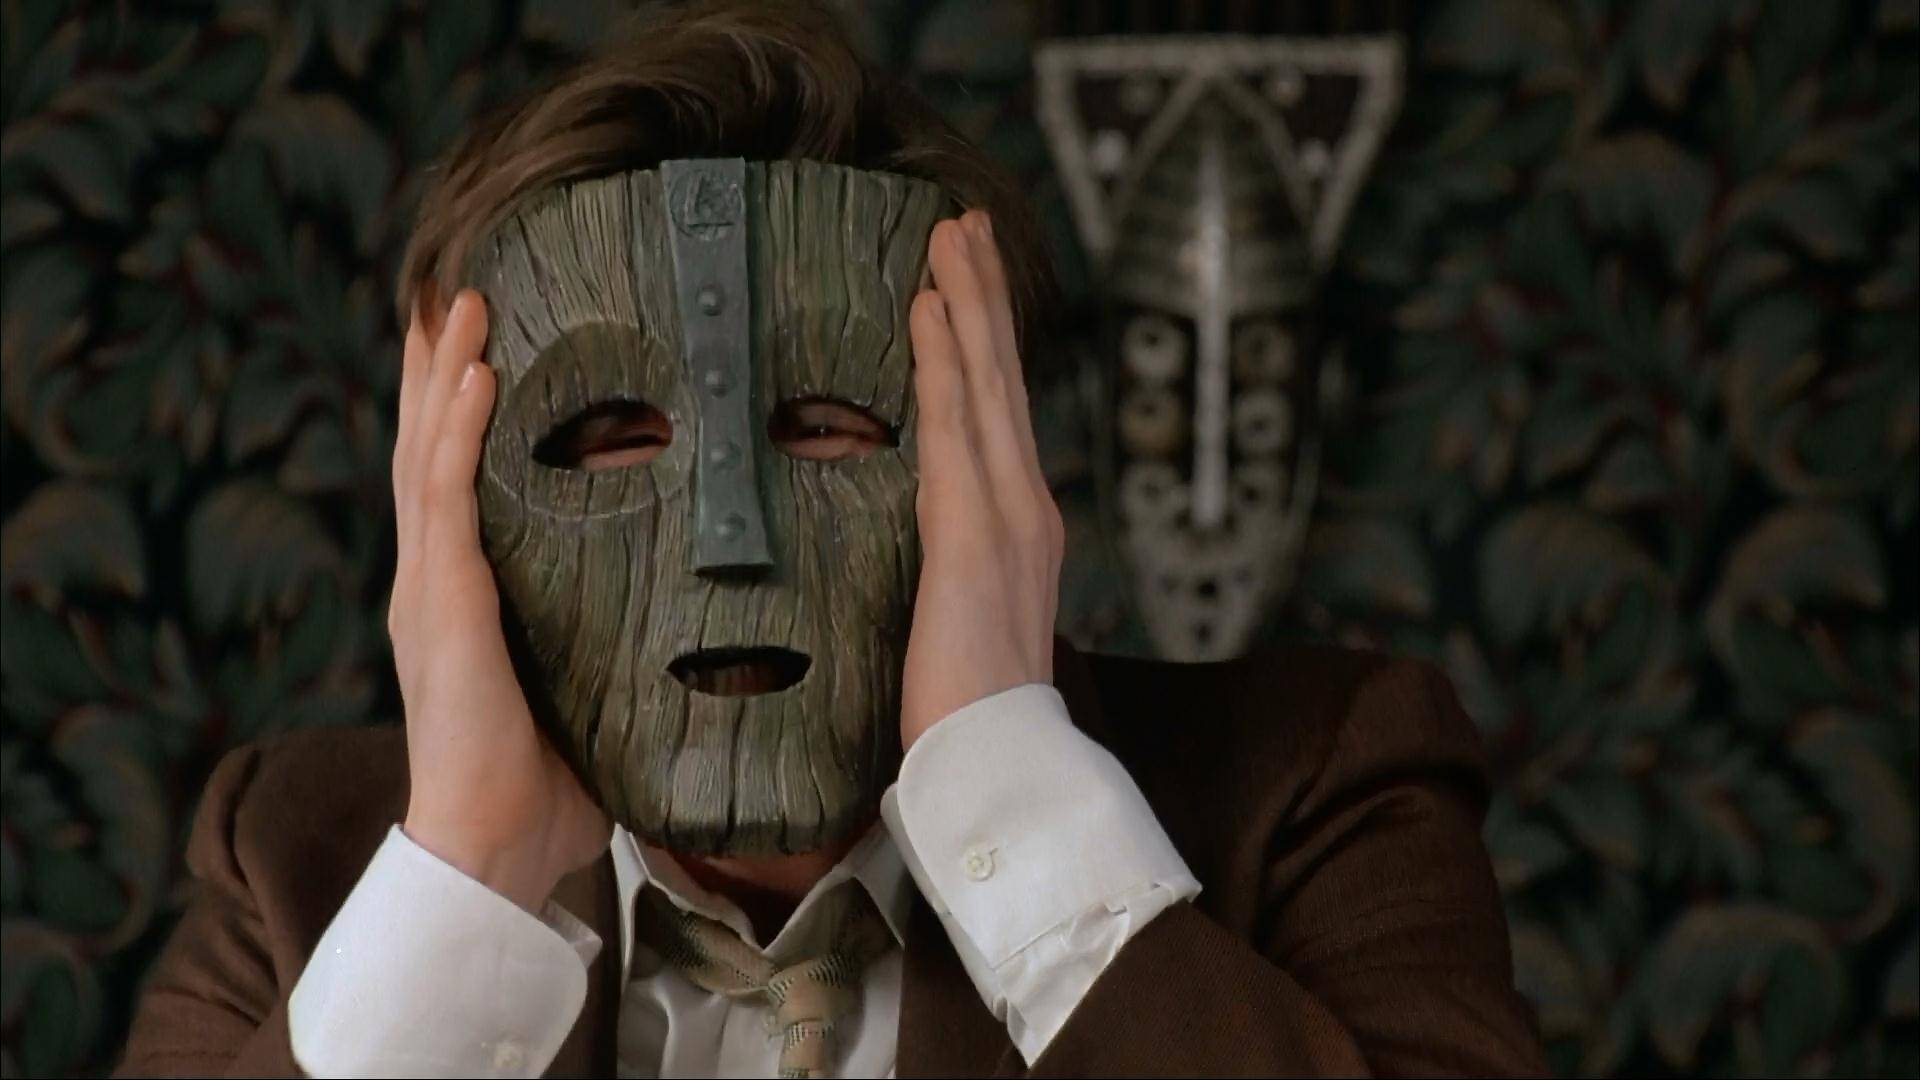 the-mask-jim-carrey